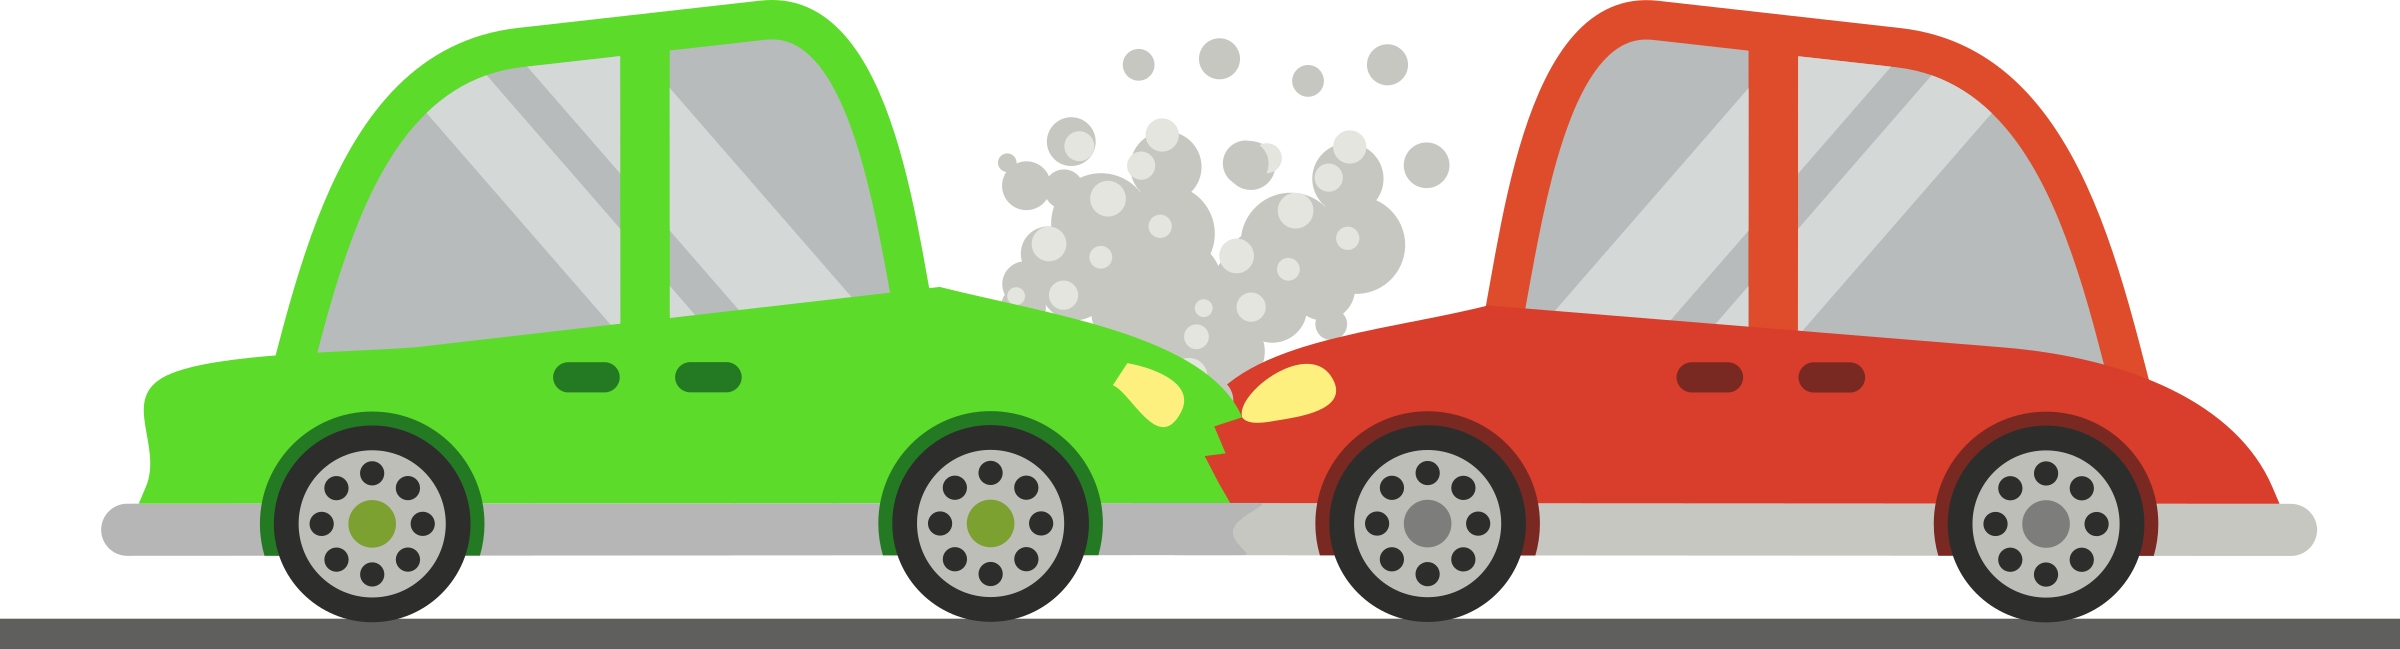 Clipart car smash.